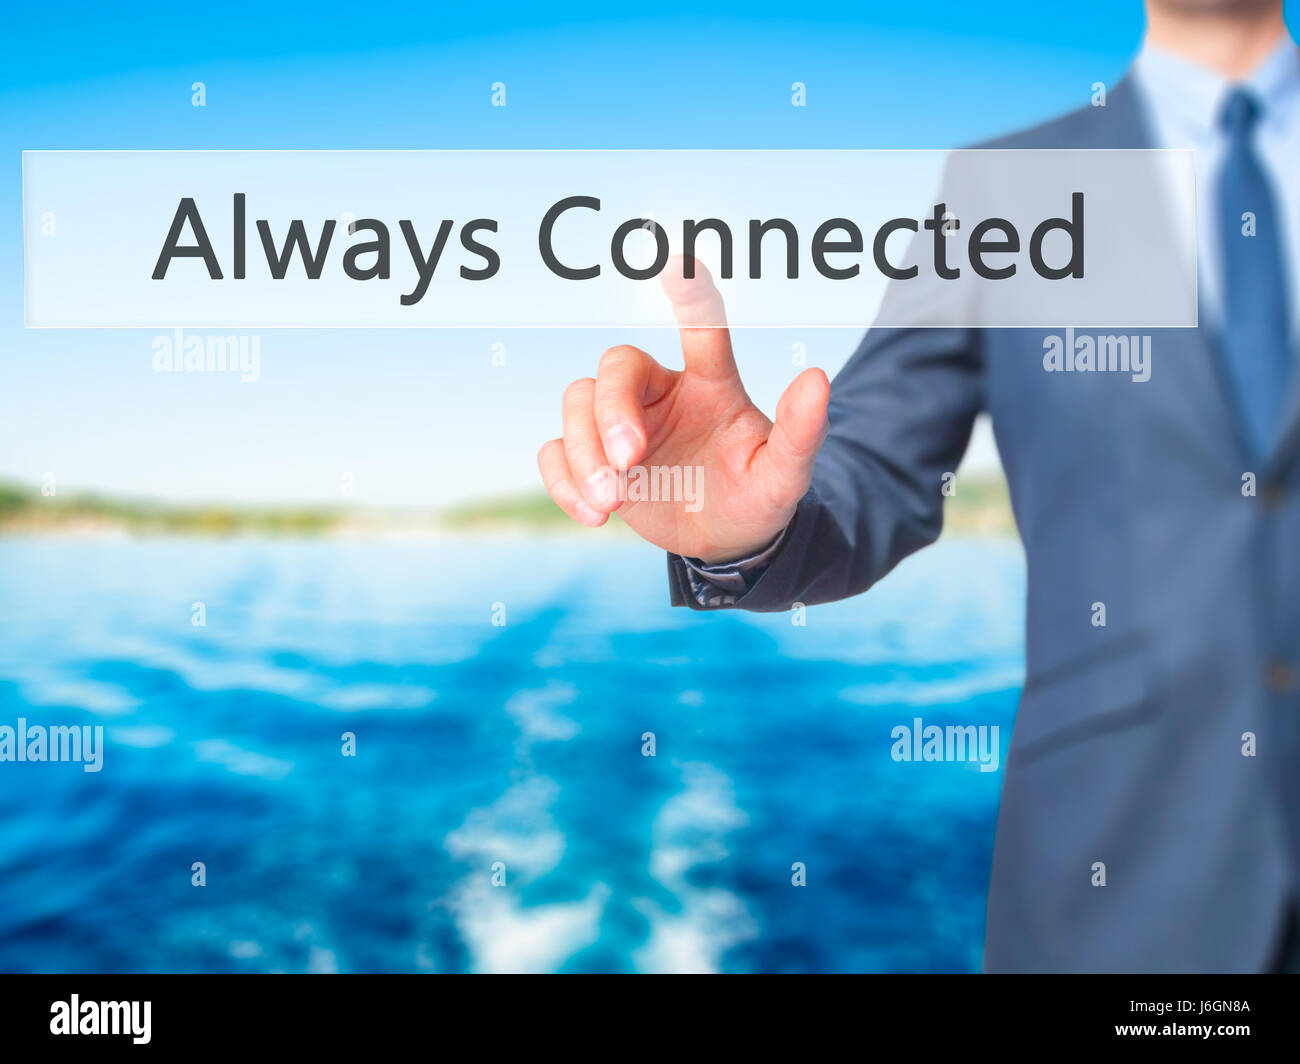 Always Connected - Businessman hand pressing button on touch screen interface. Business, technology, internet concept. - Stock Image